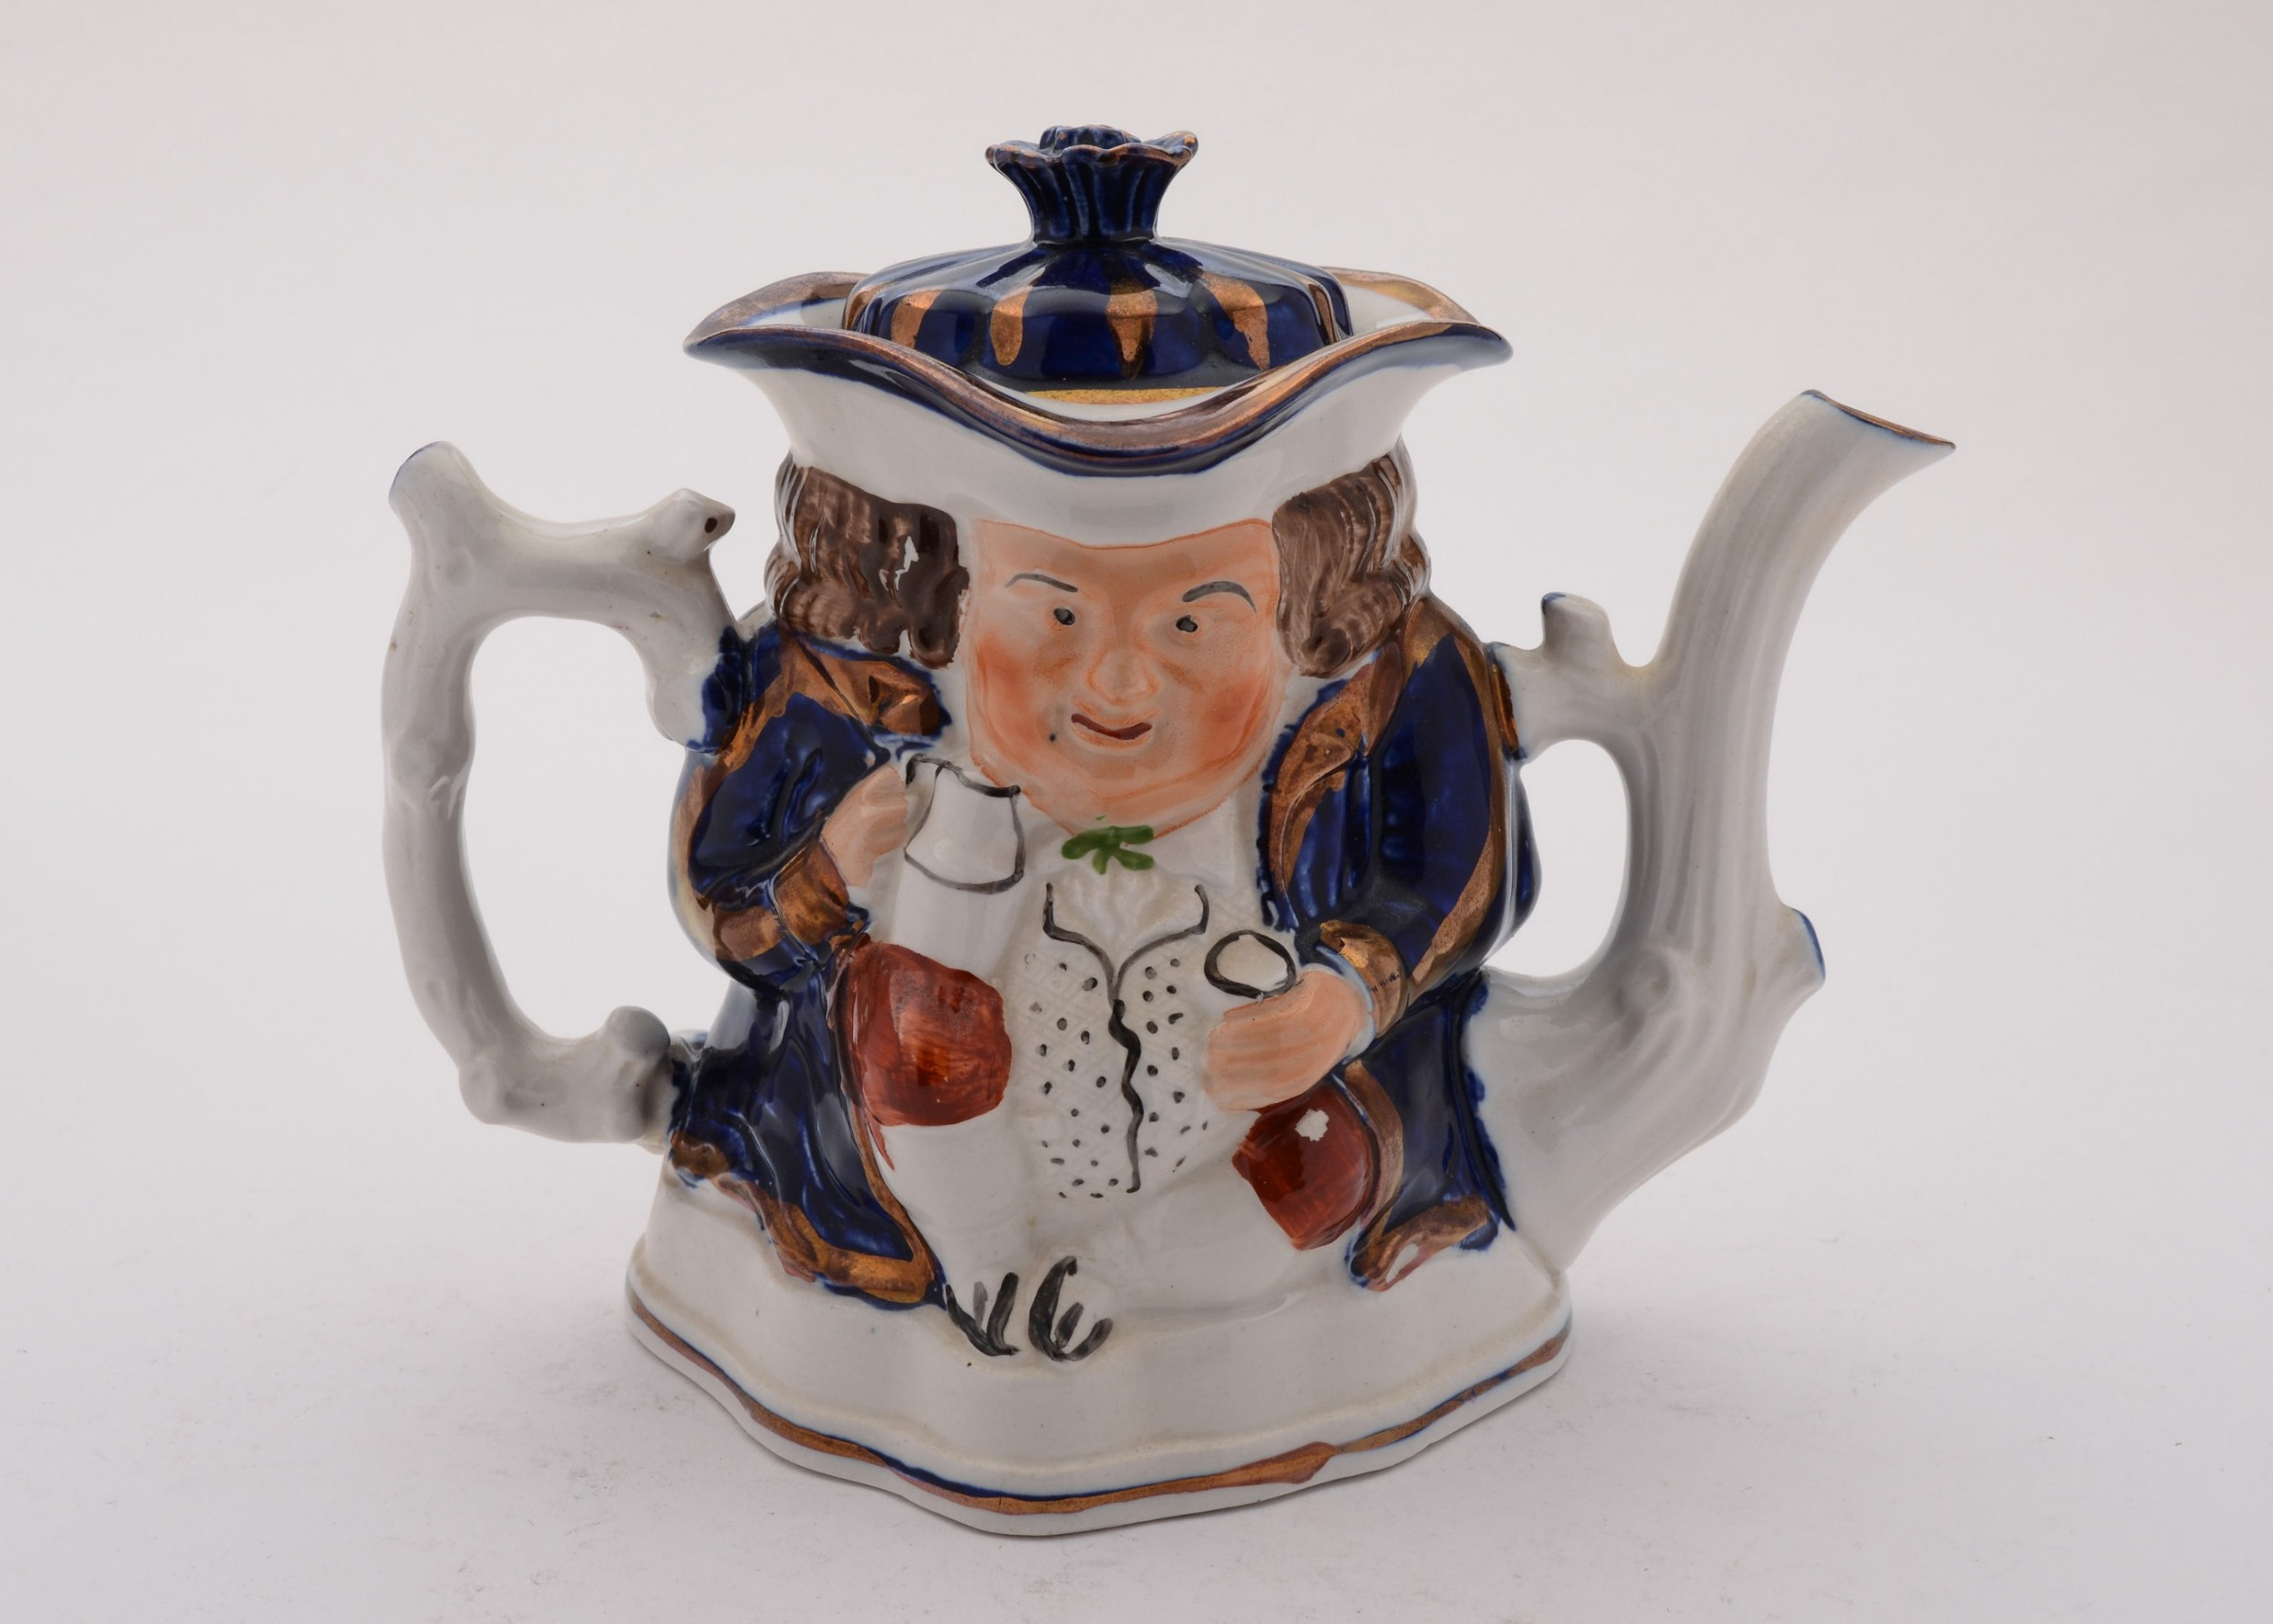 lovely toby style staffordshire china teapot circa 1890